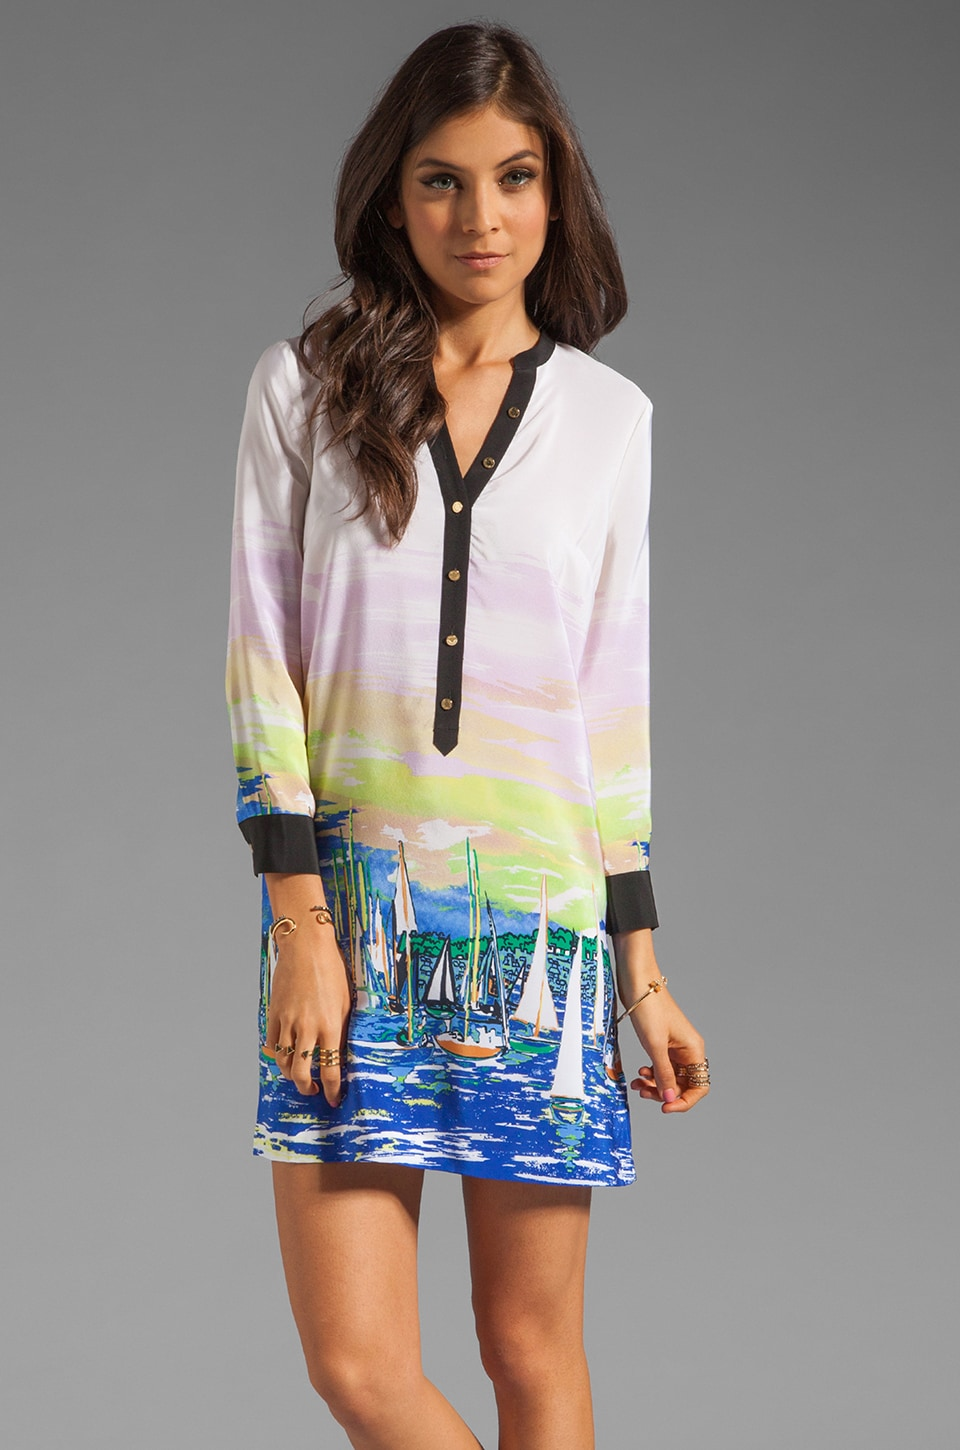 Juicy Couture Shirt Dress in Marina Print